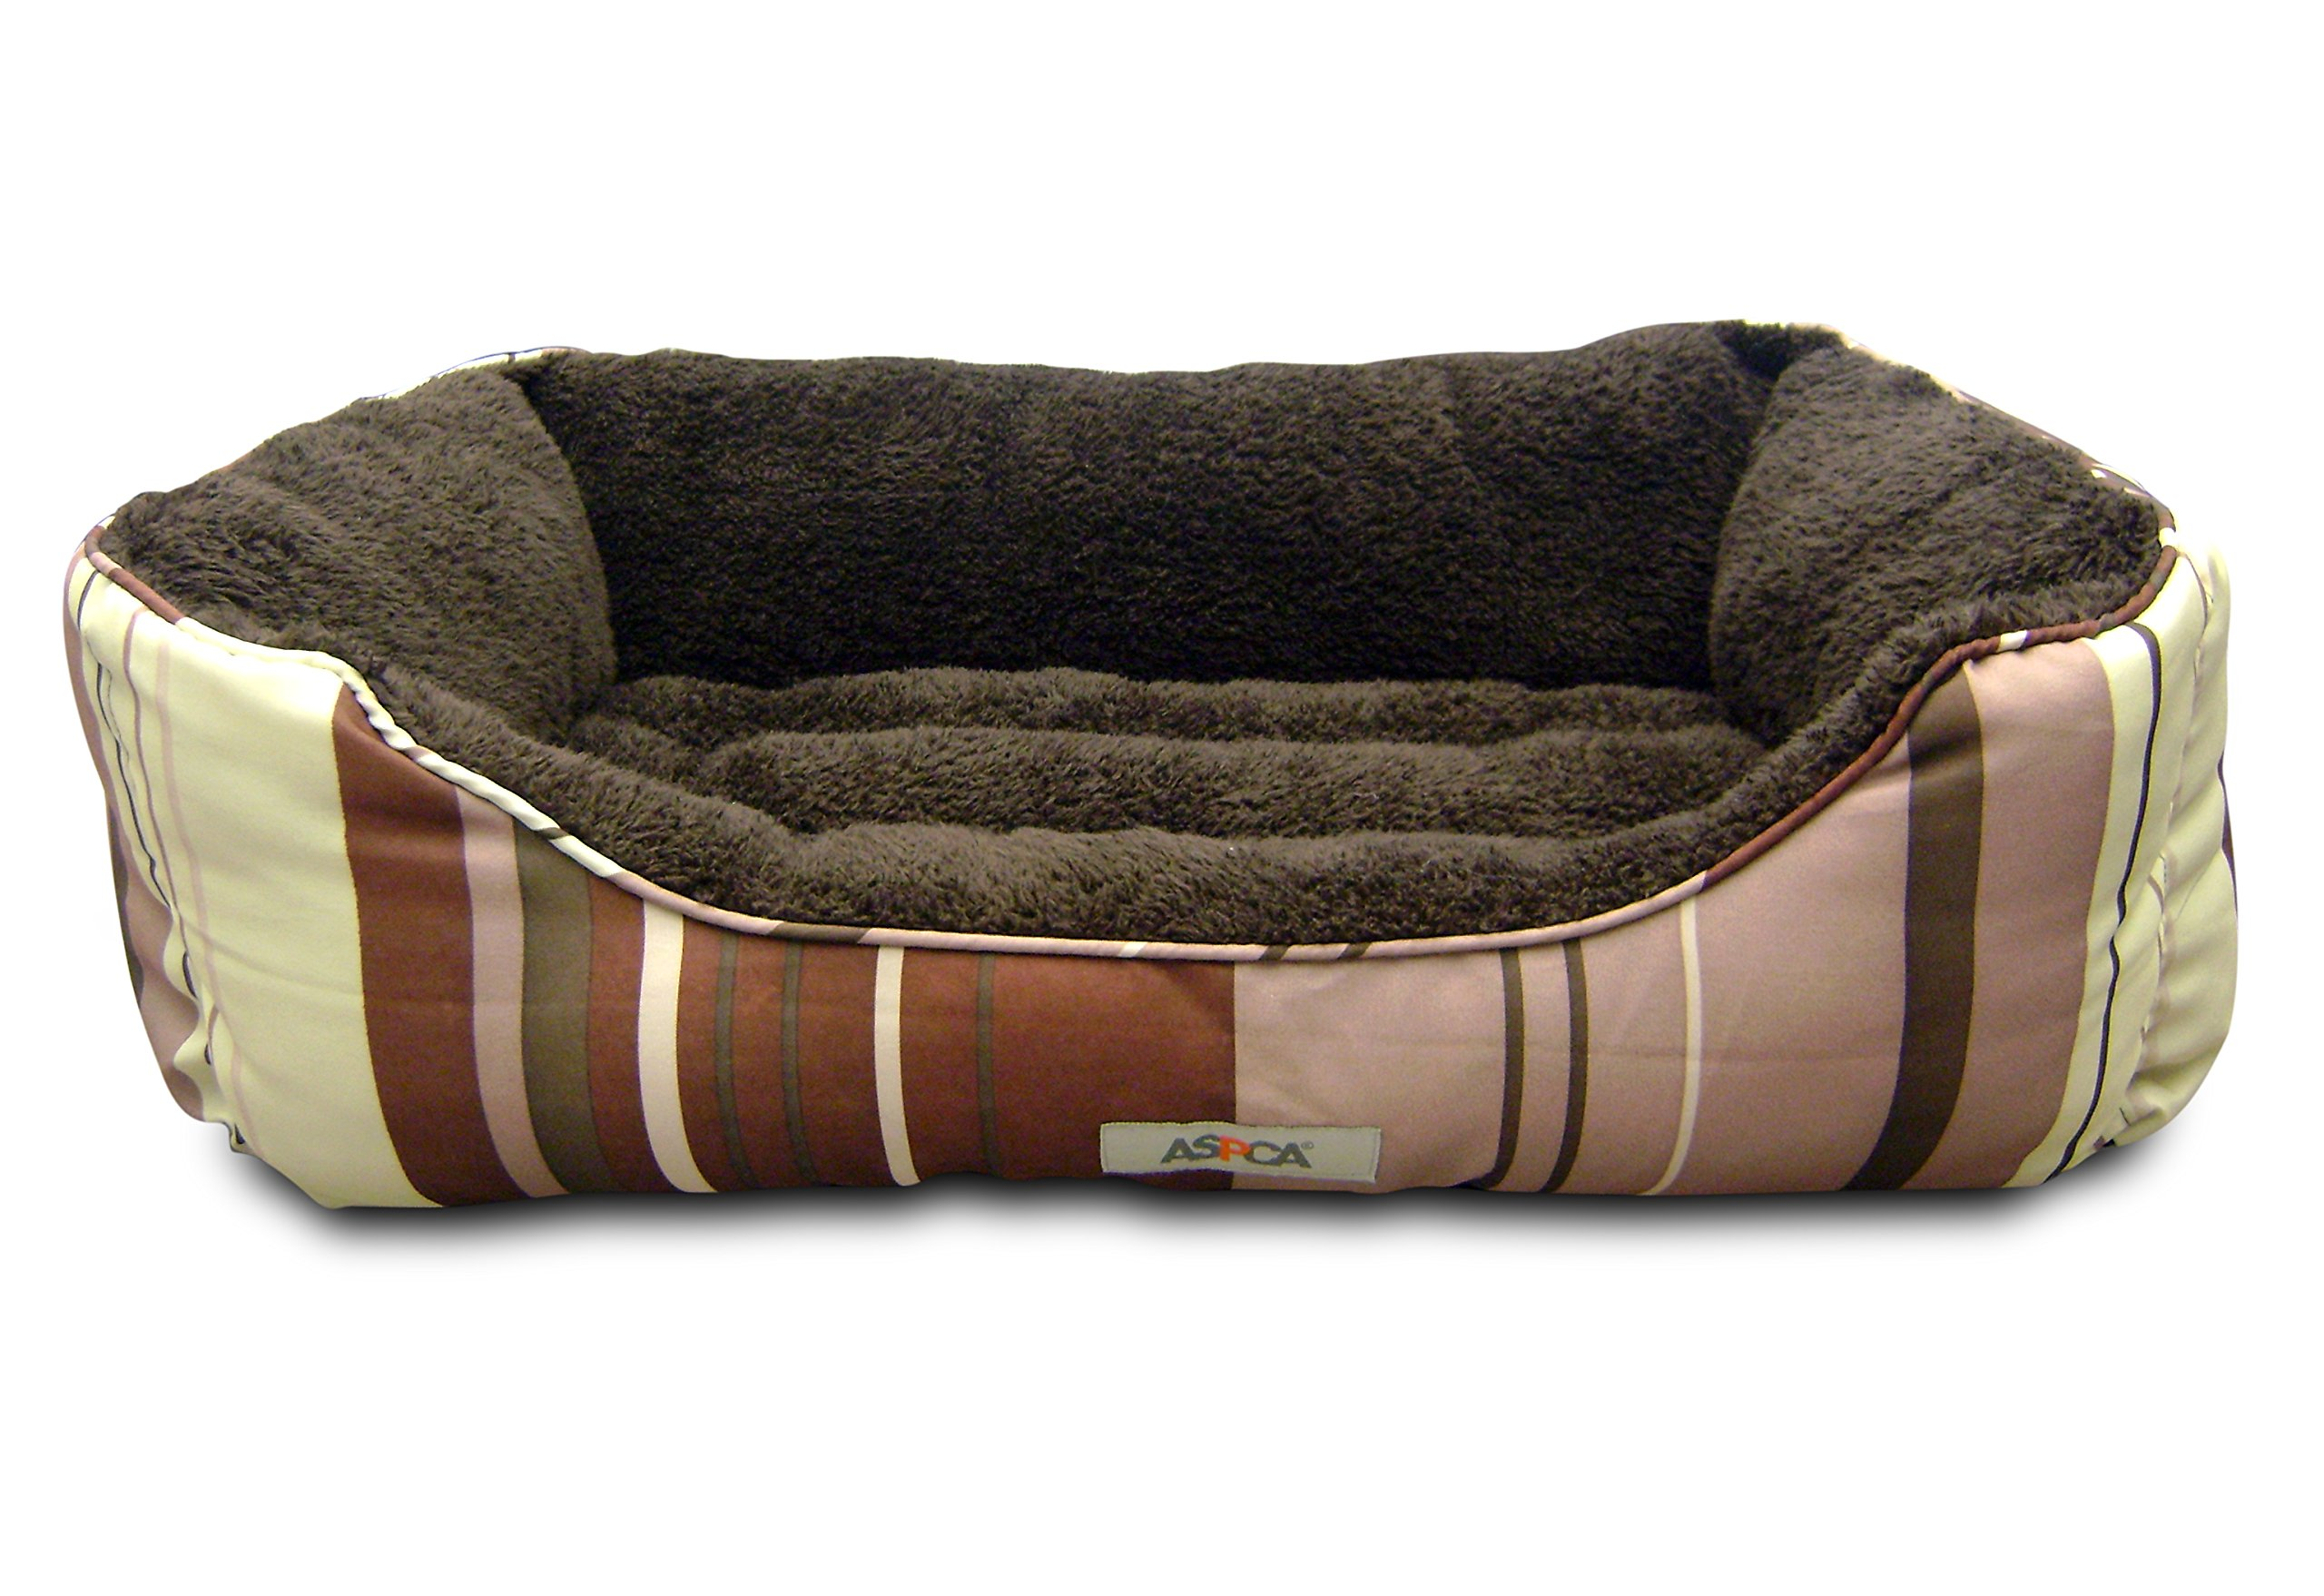 ASPCA Microtech Striped Dog Bed Cuddler 28 by 20 by 8-Inch. Brown